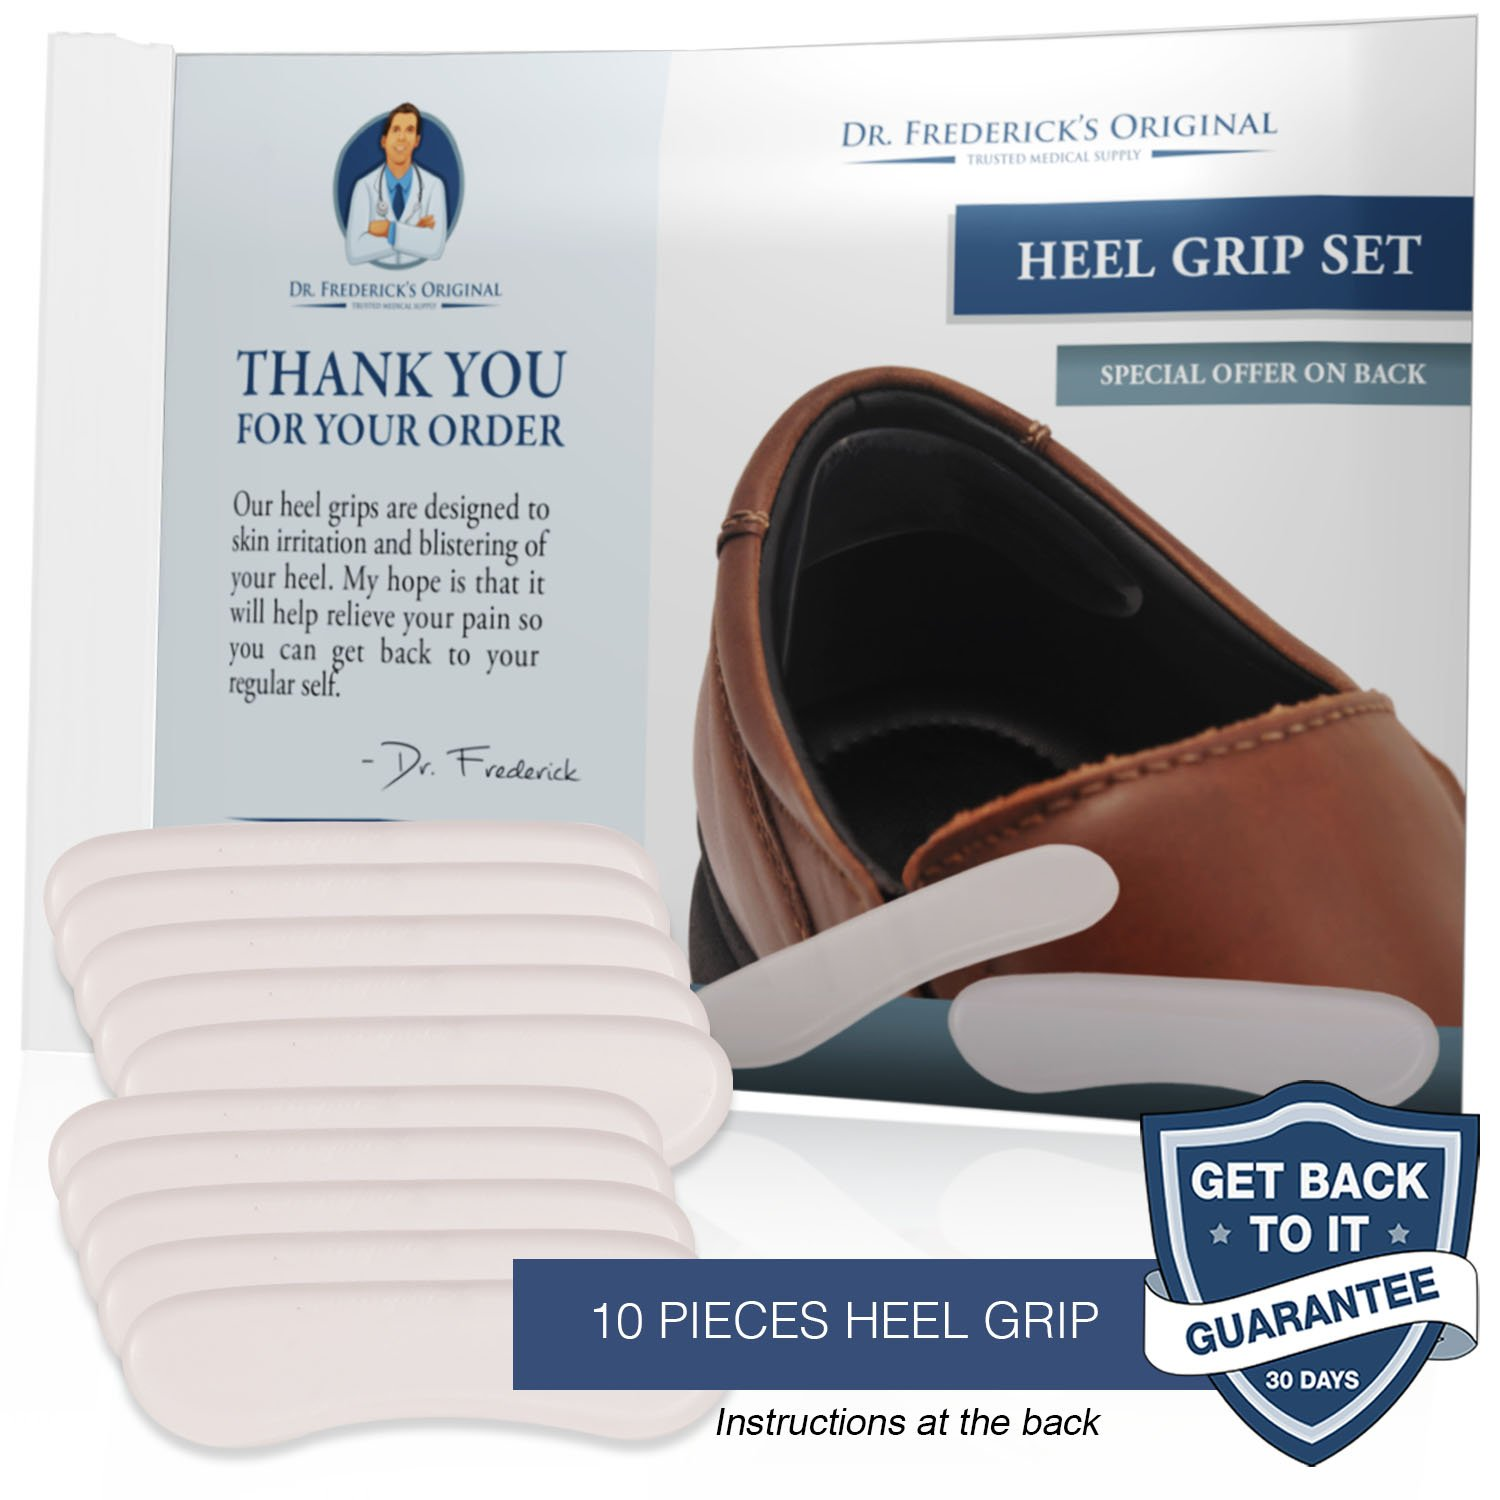 Dr. Frederick's Original Protective & Flexible Heel Grips Set - 10 Pieces - Adhesive Gel Heel Protectors to Prevent Blisters & Cuts - Heel Cushion Set for High Heels, Dress Shoes, Slip-Ons, and More by Dr. Frederick's Original (Image #2)